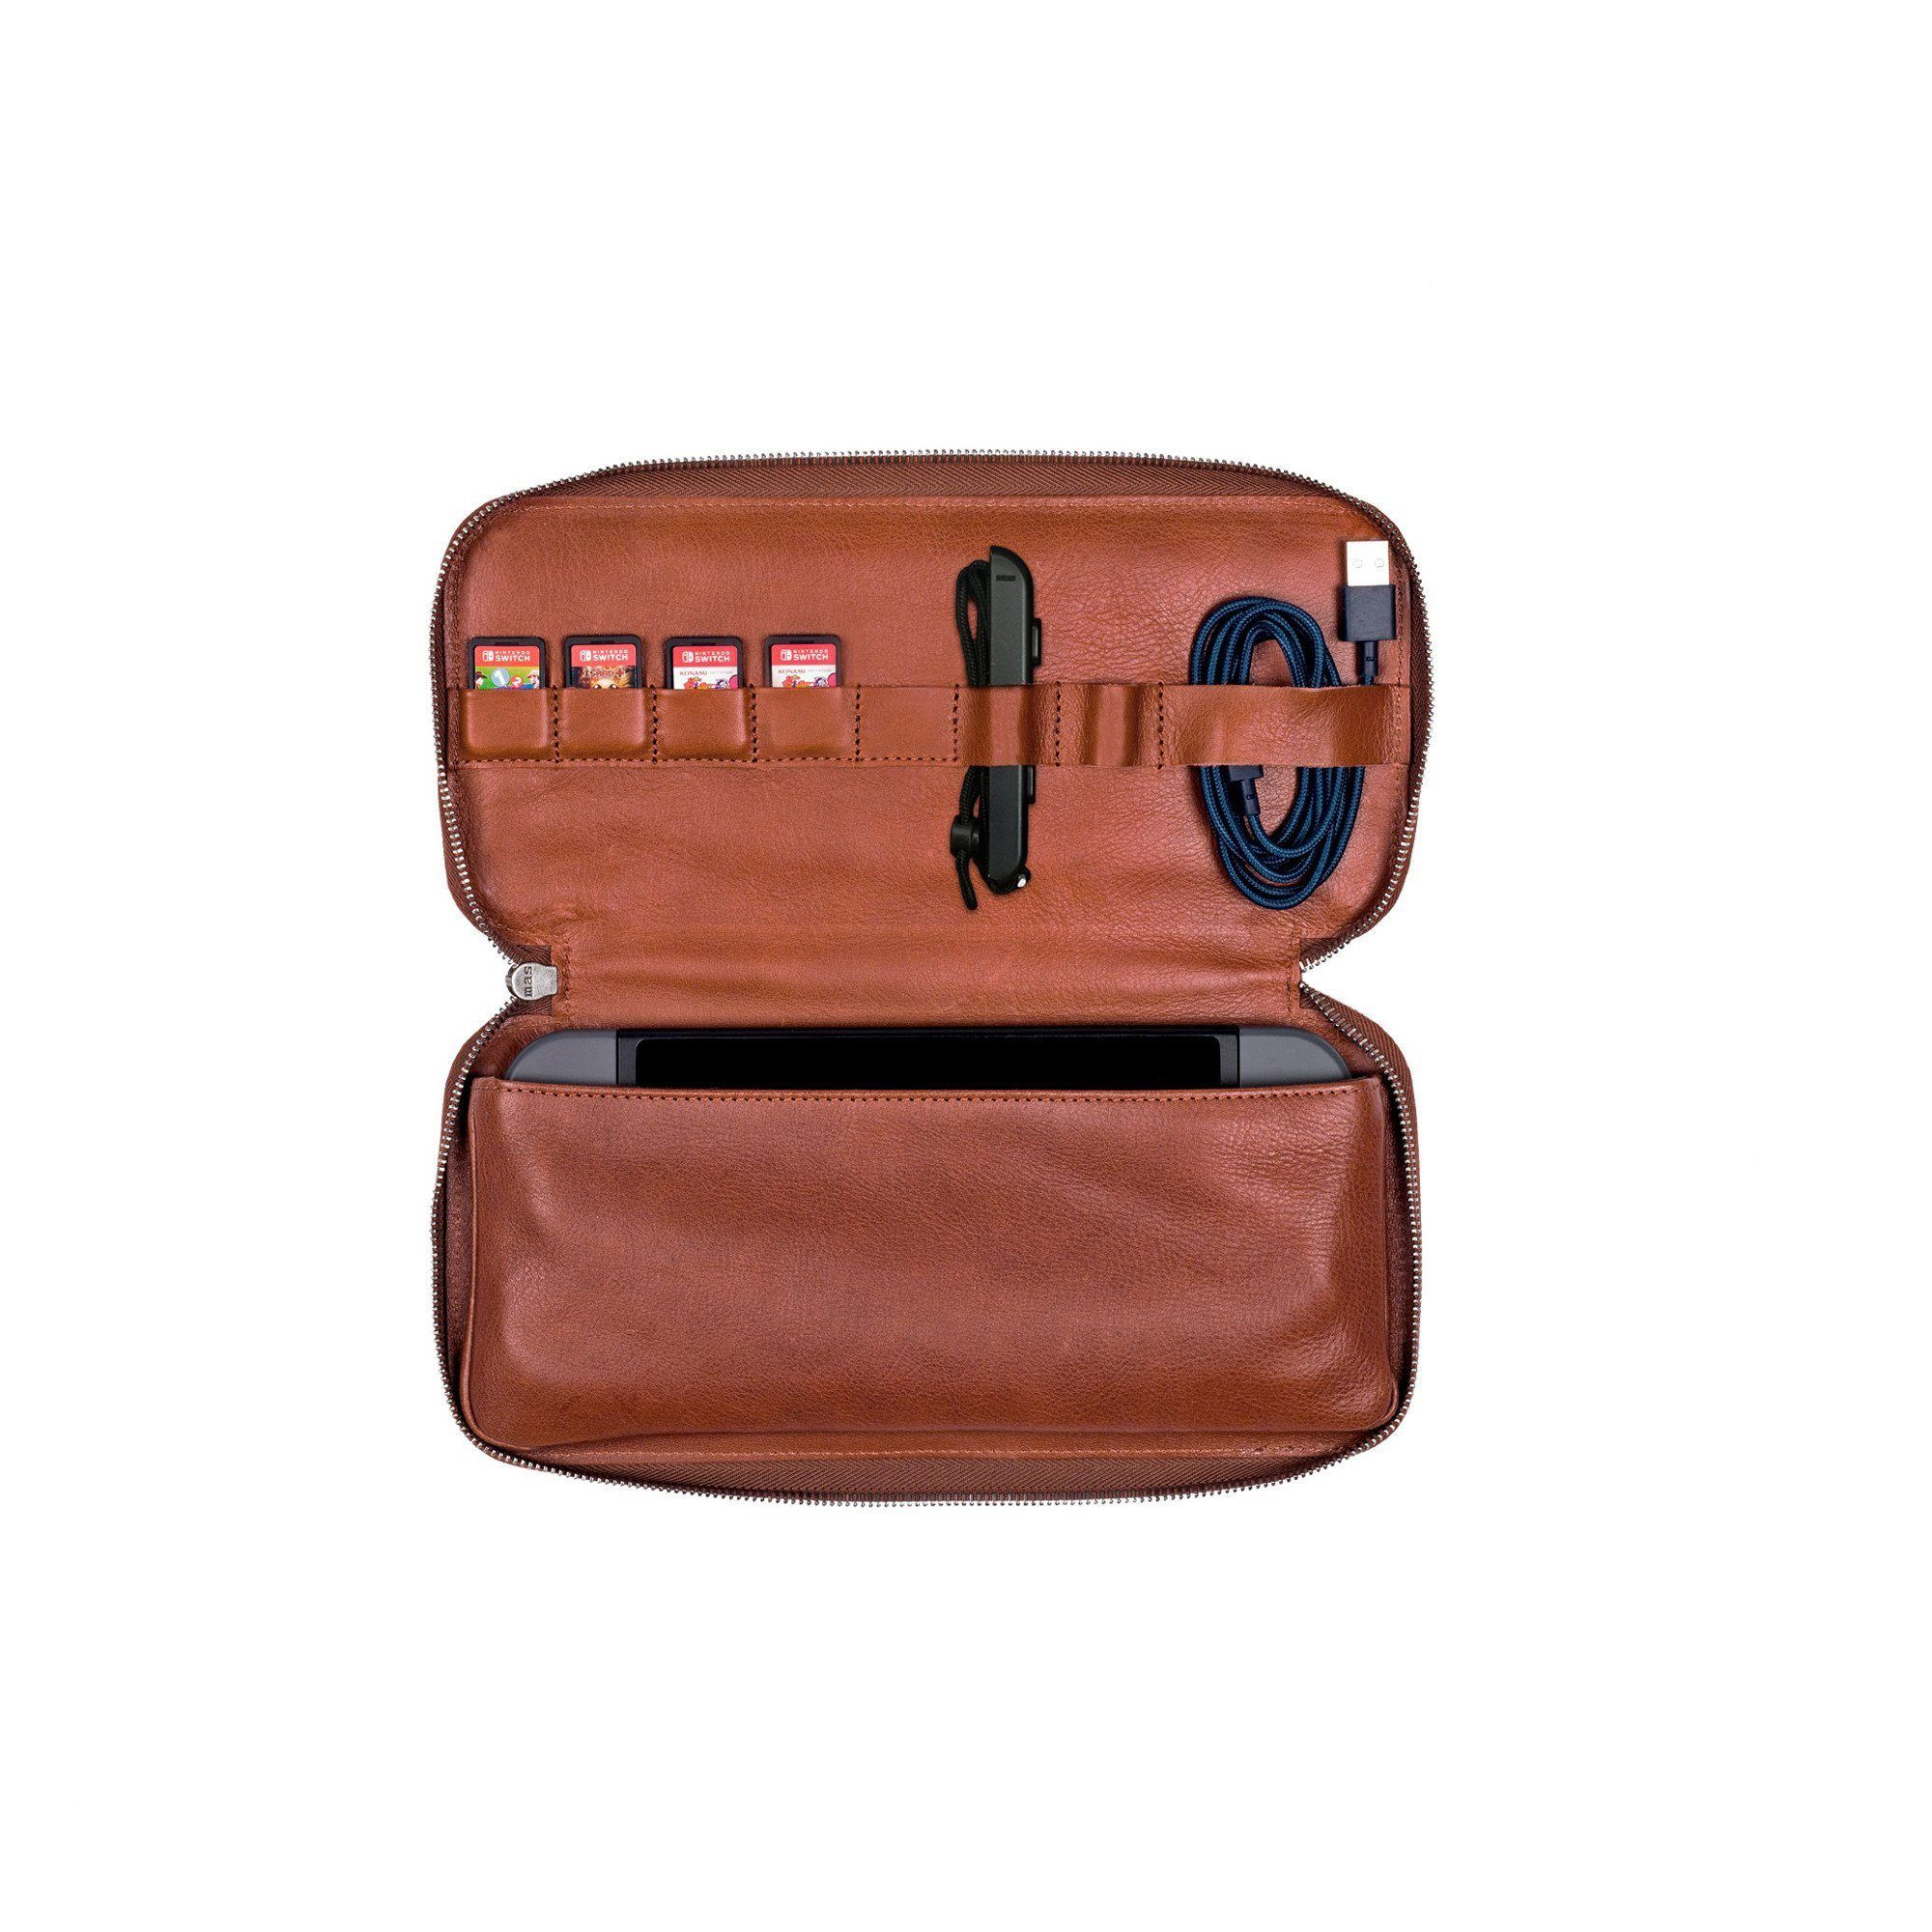 e1159621e7e14c Keep your Nintendo Switch safe and secure in our 100% bovine vegetable  tanned leather travel case. The high end case is designed to hold the  Switch